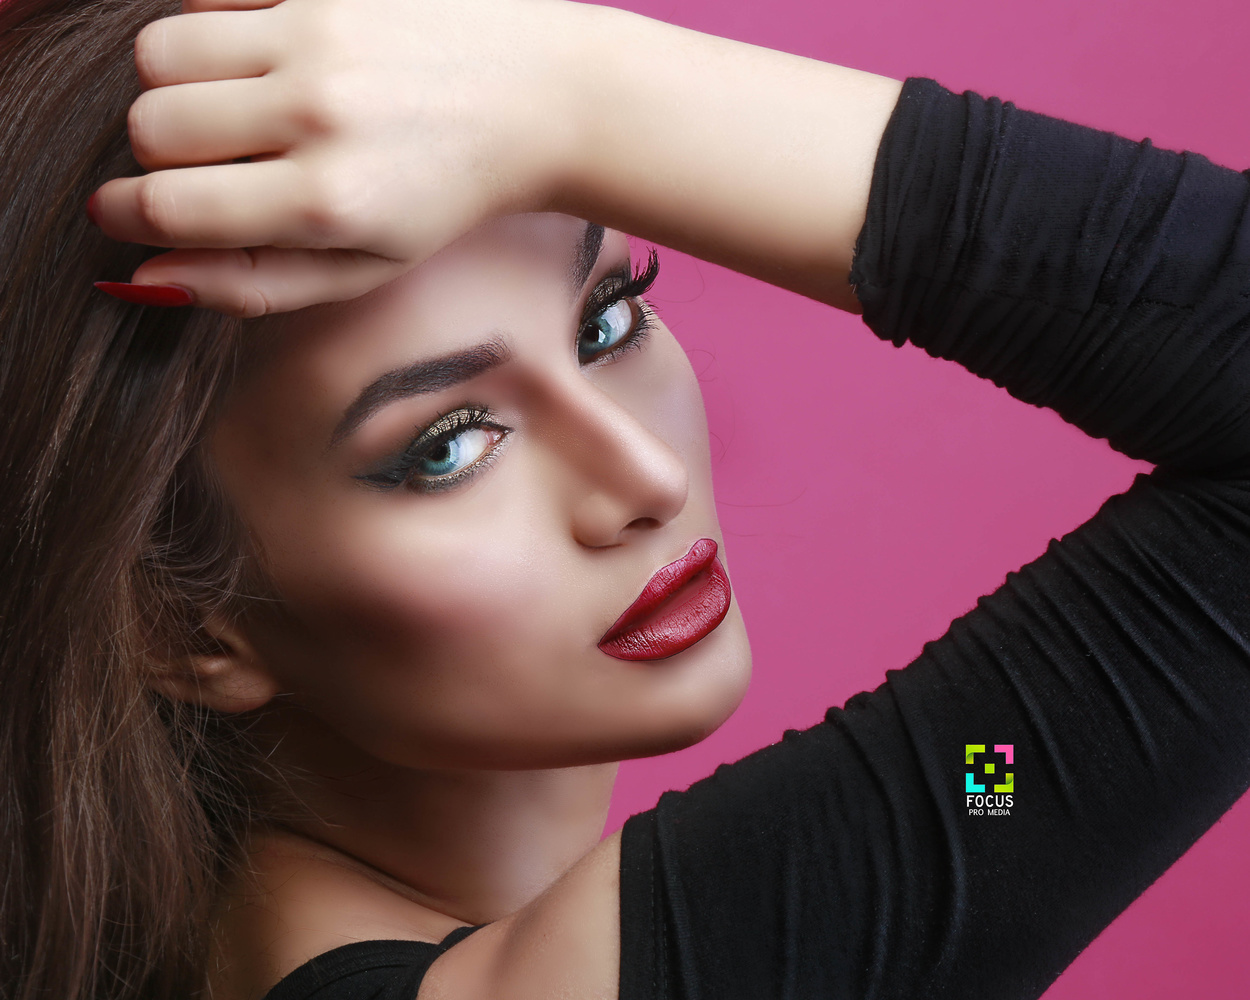 Untitled 7 by Focus pro media Oujda